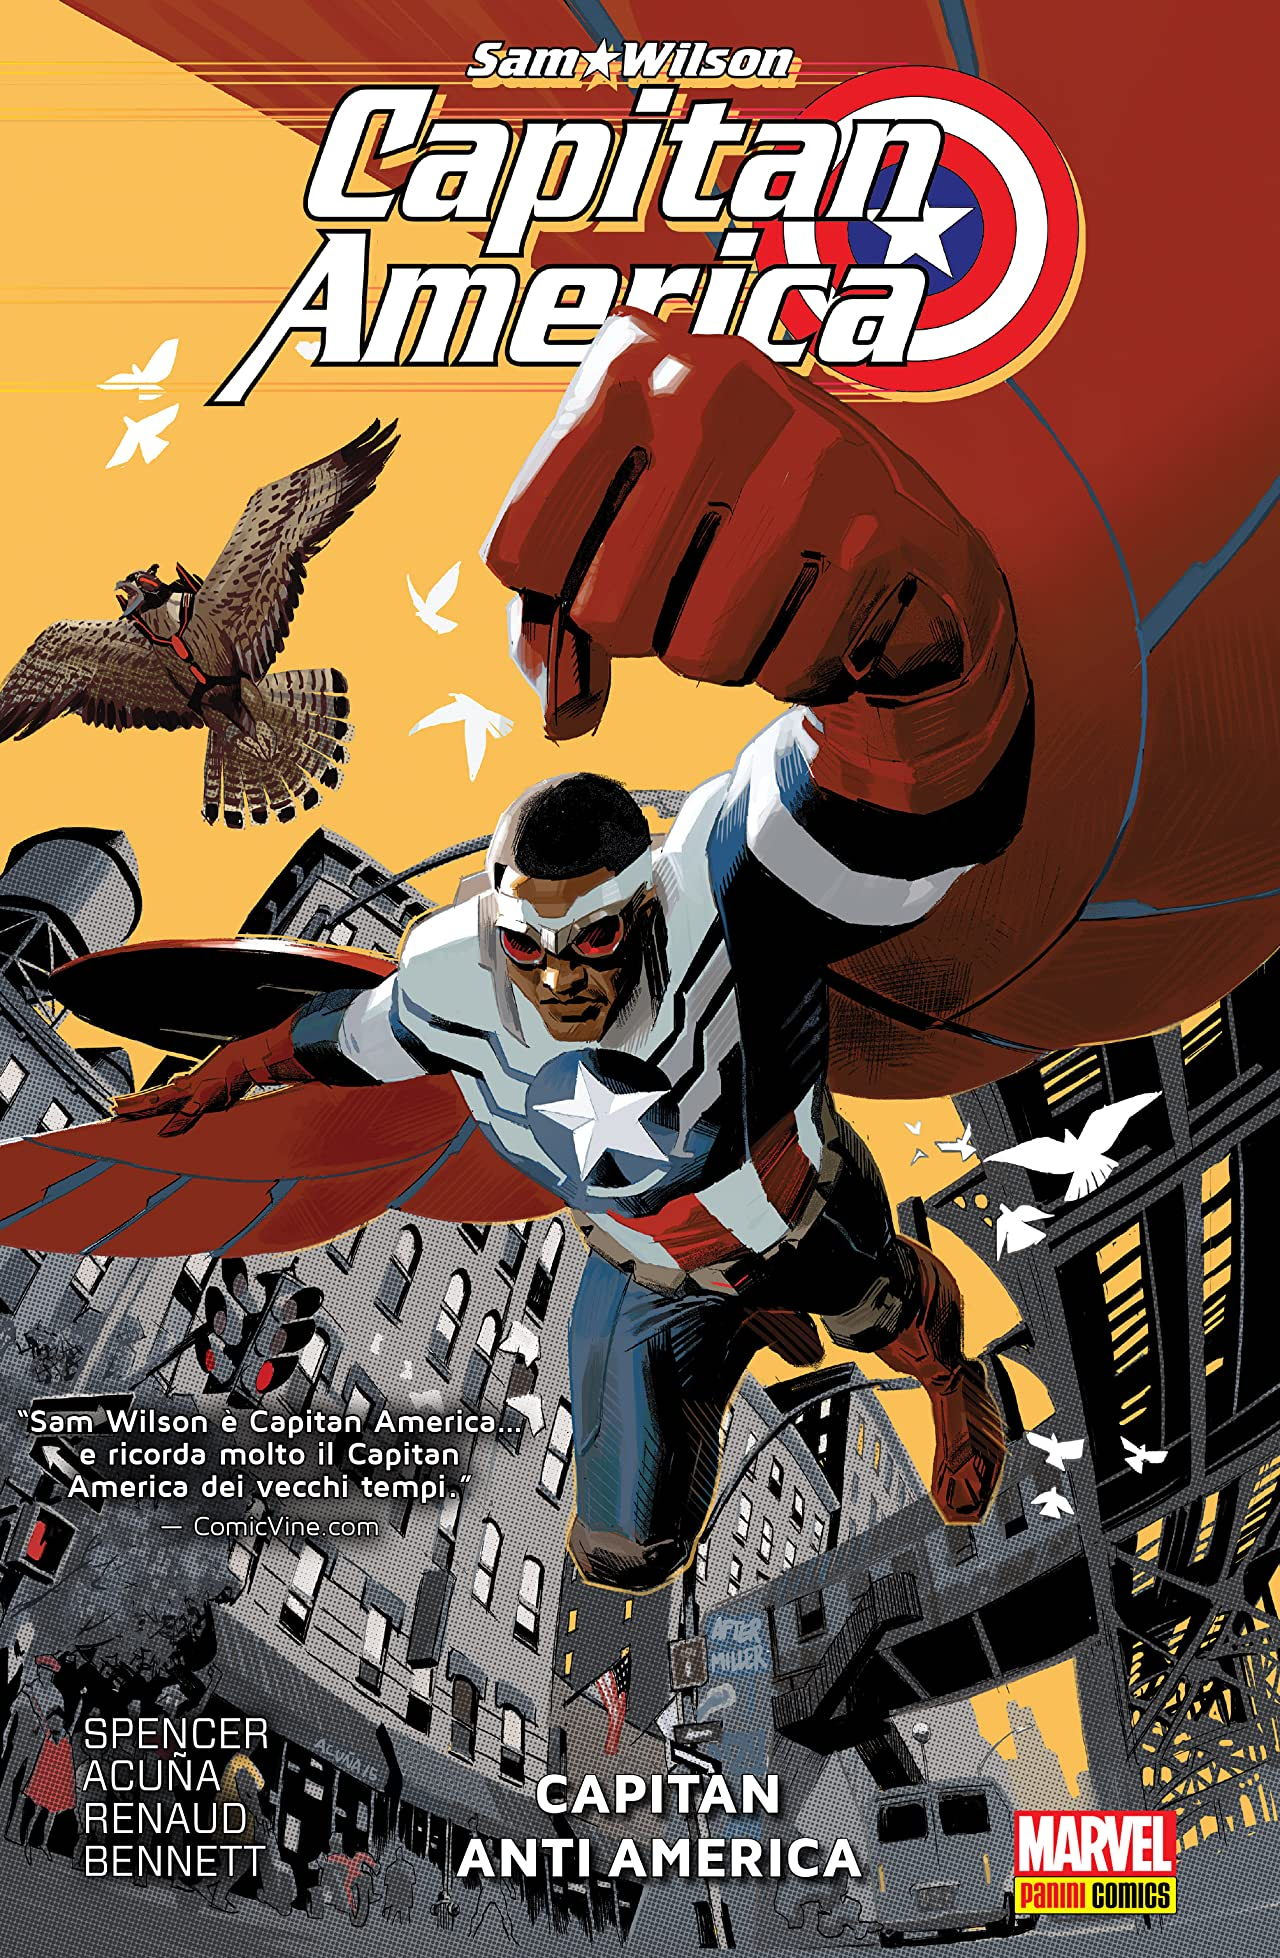 Capitan America: Sam Wilson Vol. 1: Capitan Anti America